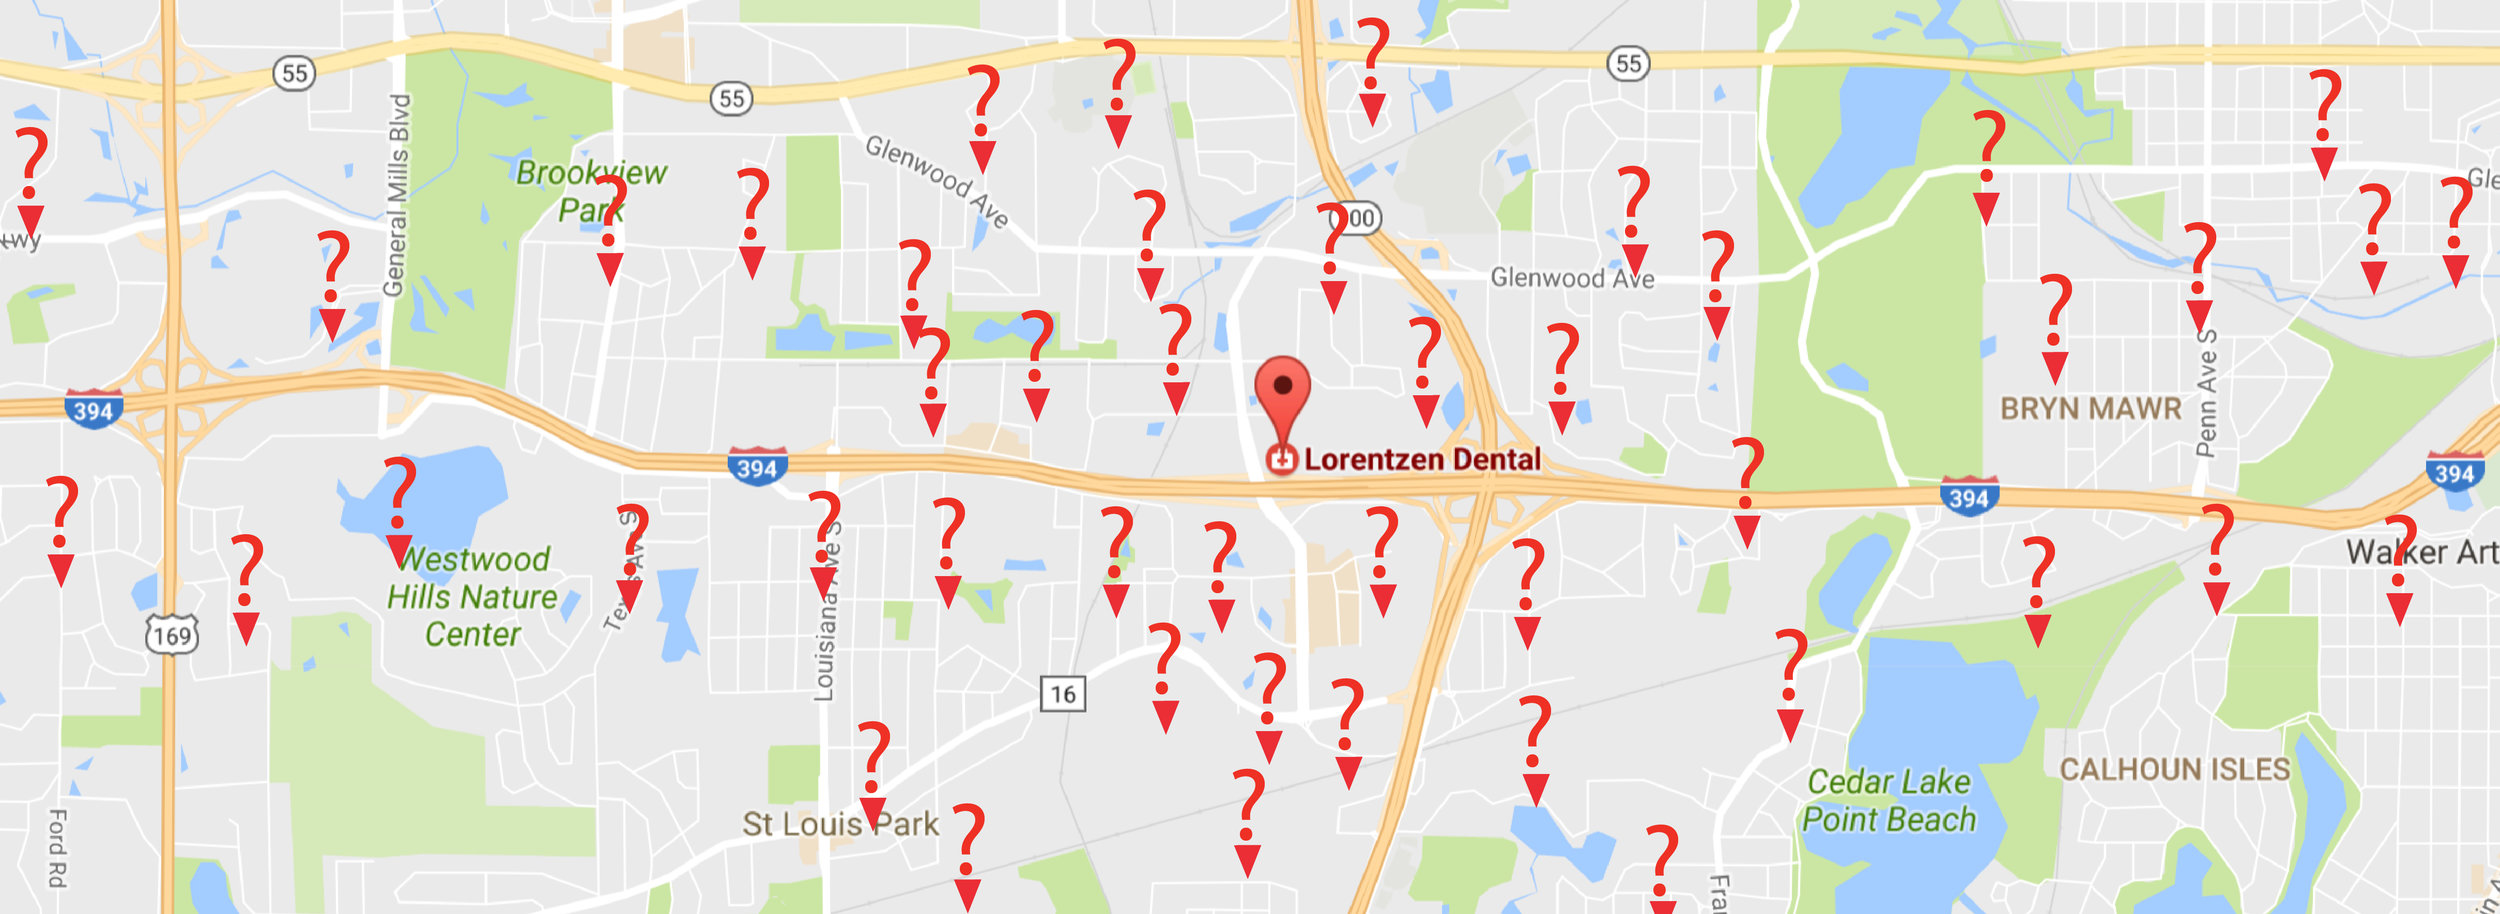 Lorentzen Dental is your convenient dentist for Golden Valley, Saint Louis Park, Minneapolis, Minnetonka, Plymouth, New Hope and Hopkins.